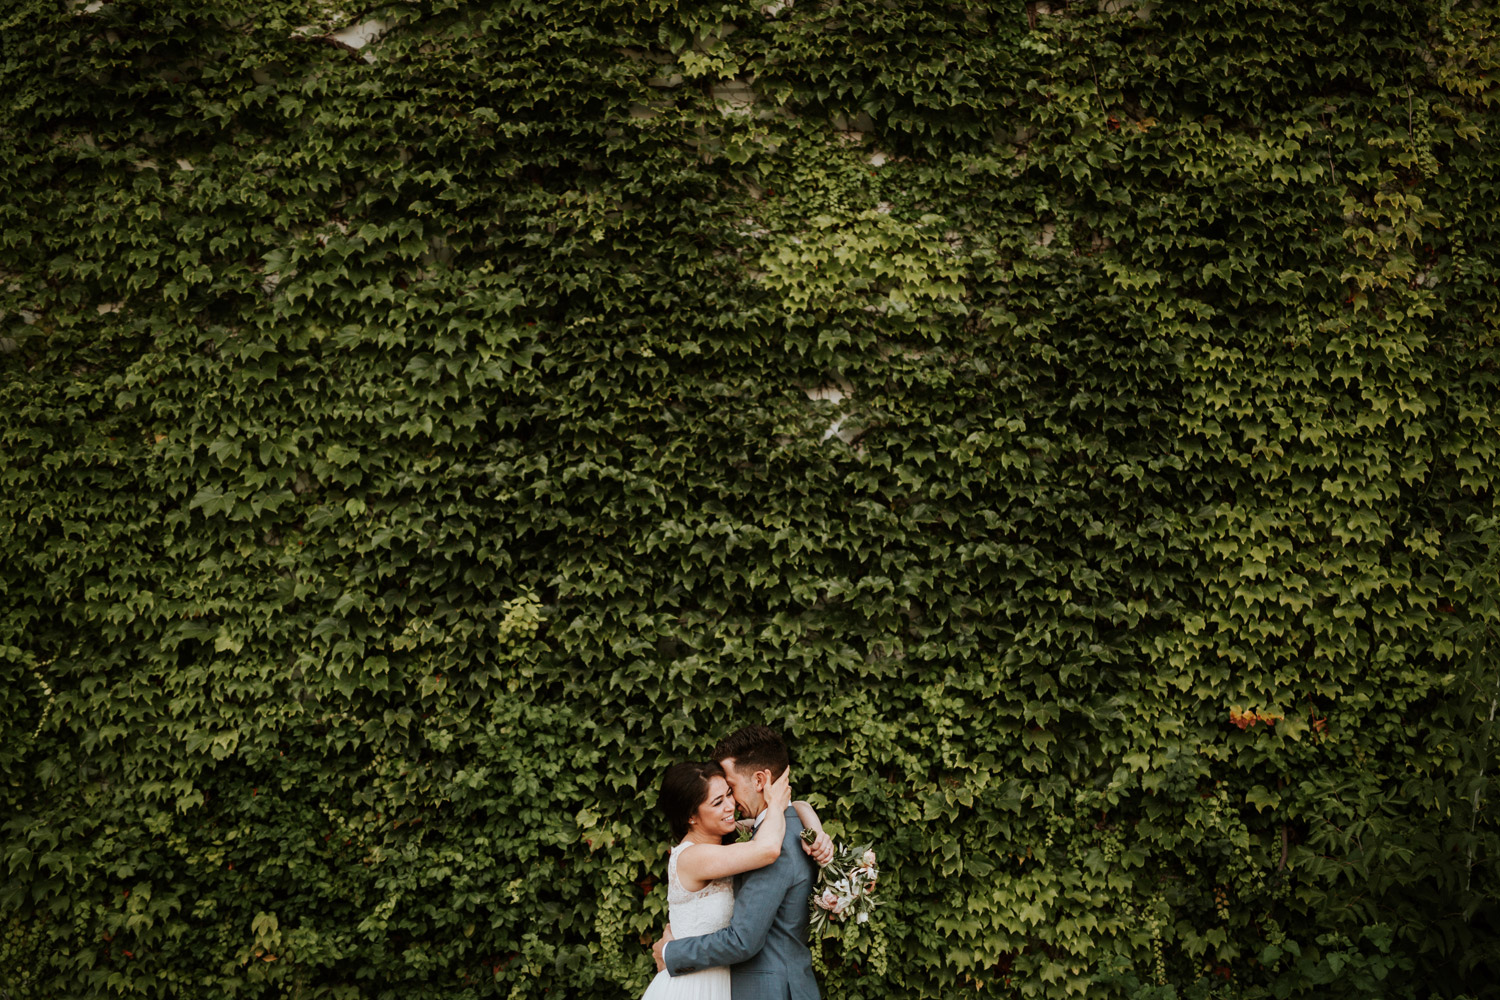 Lincoln Park Wedding Photographer Chicago